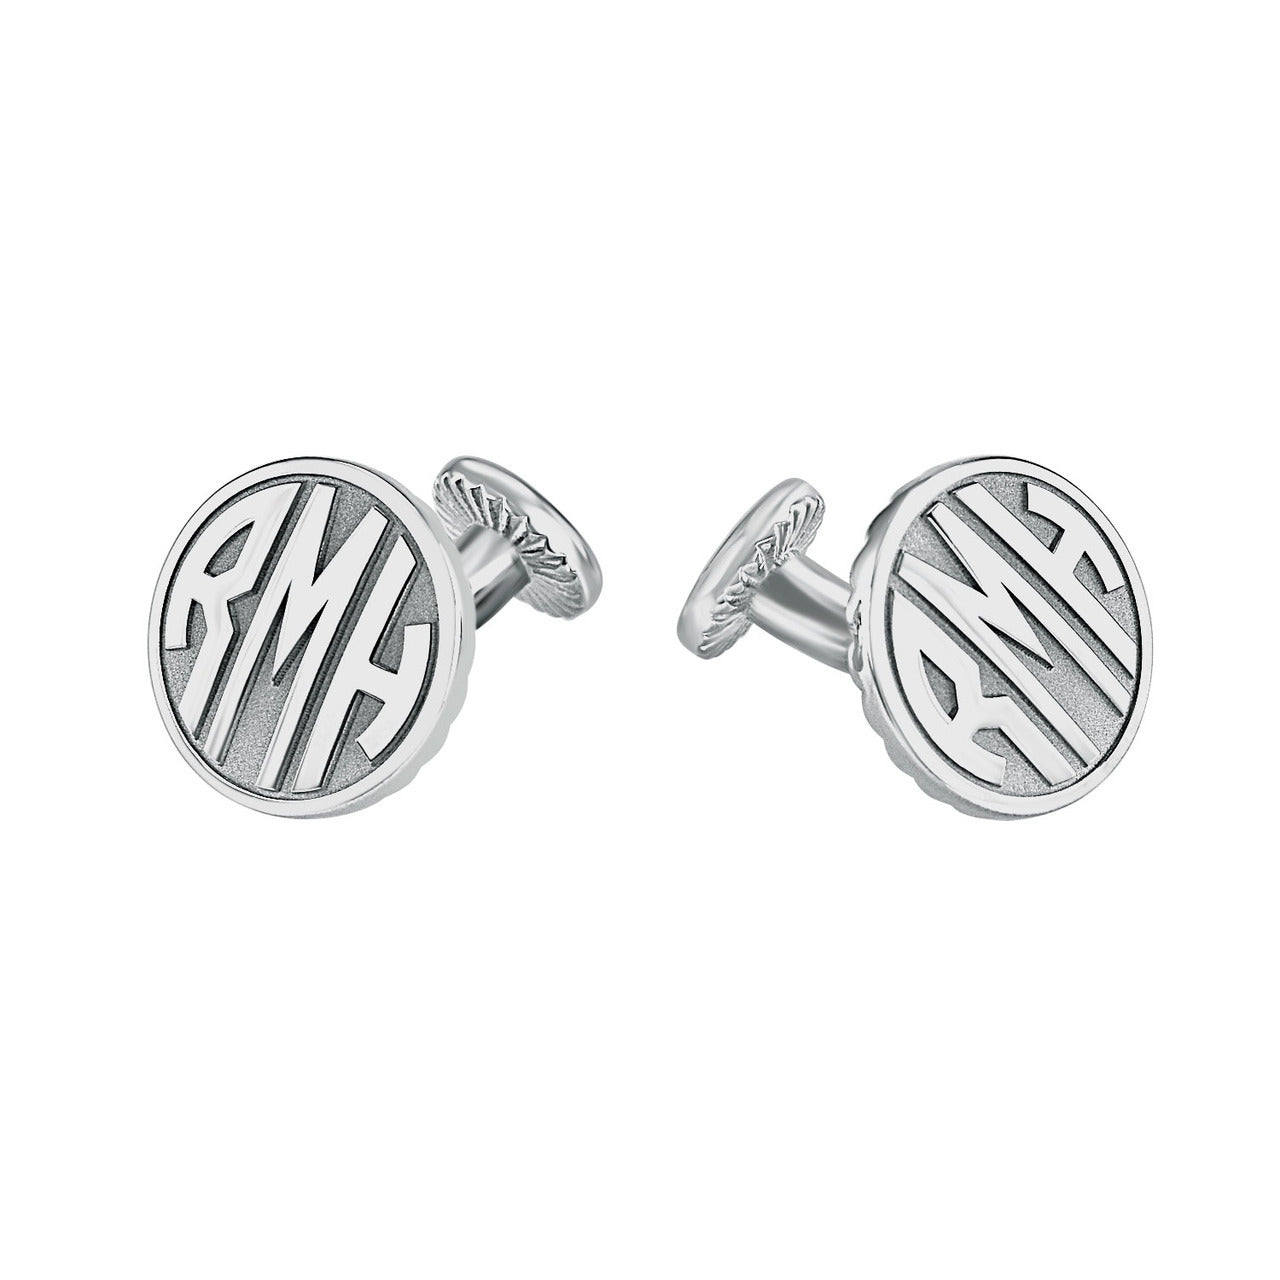 Fink's 15mm Round Original Recessed Monogram Cufflinks